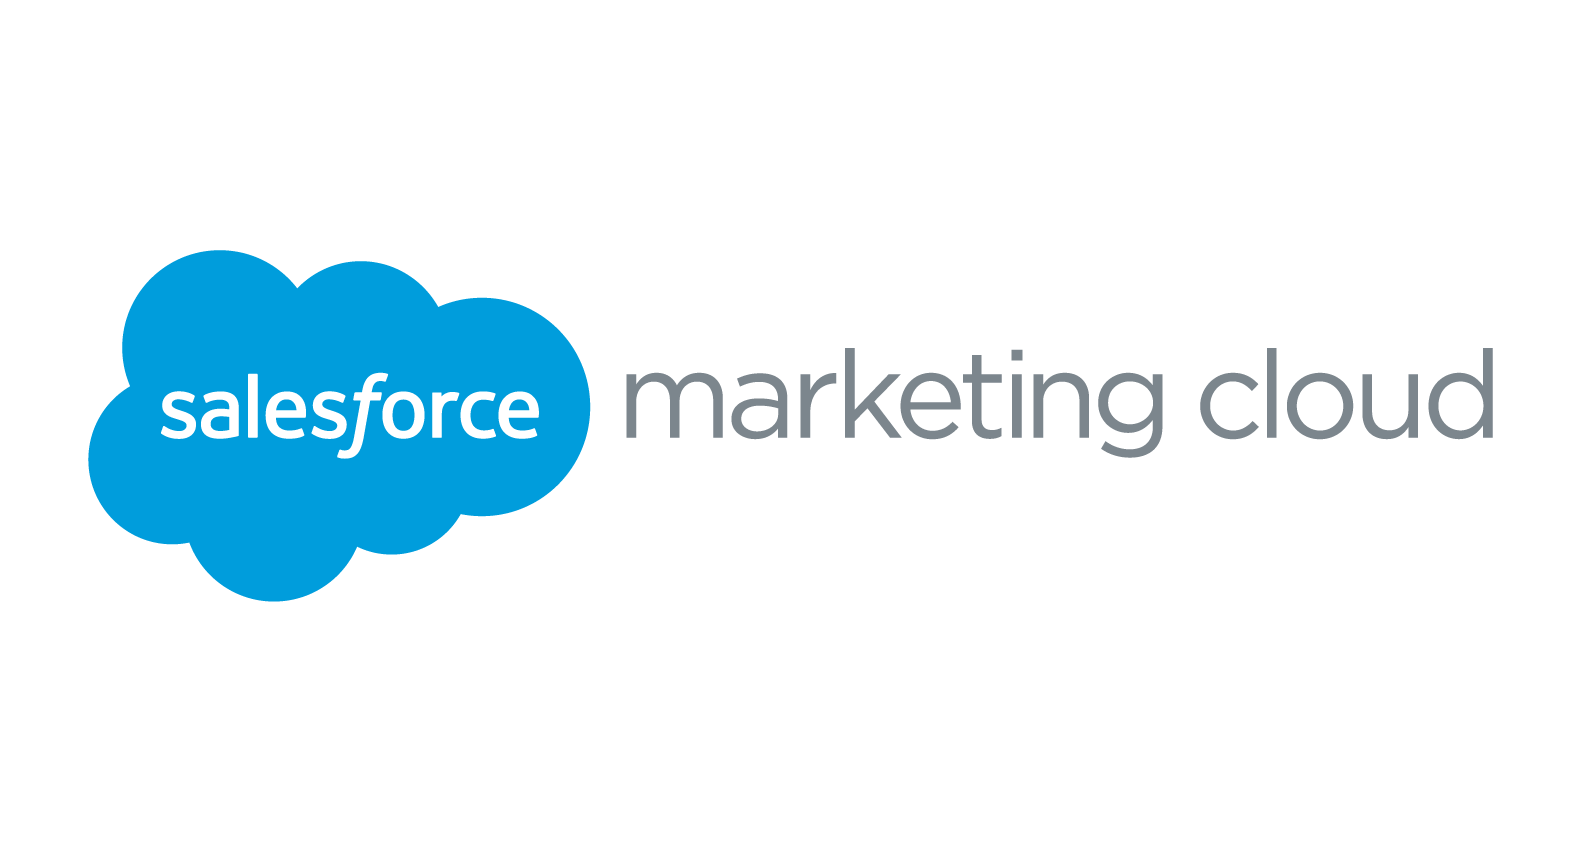 The Salesforce Marketing Cloud - Salesforce Blog